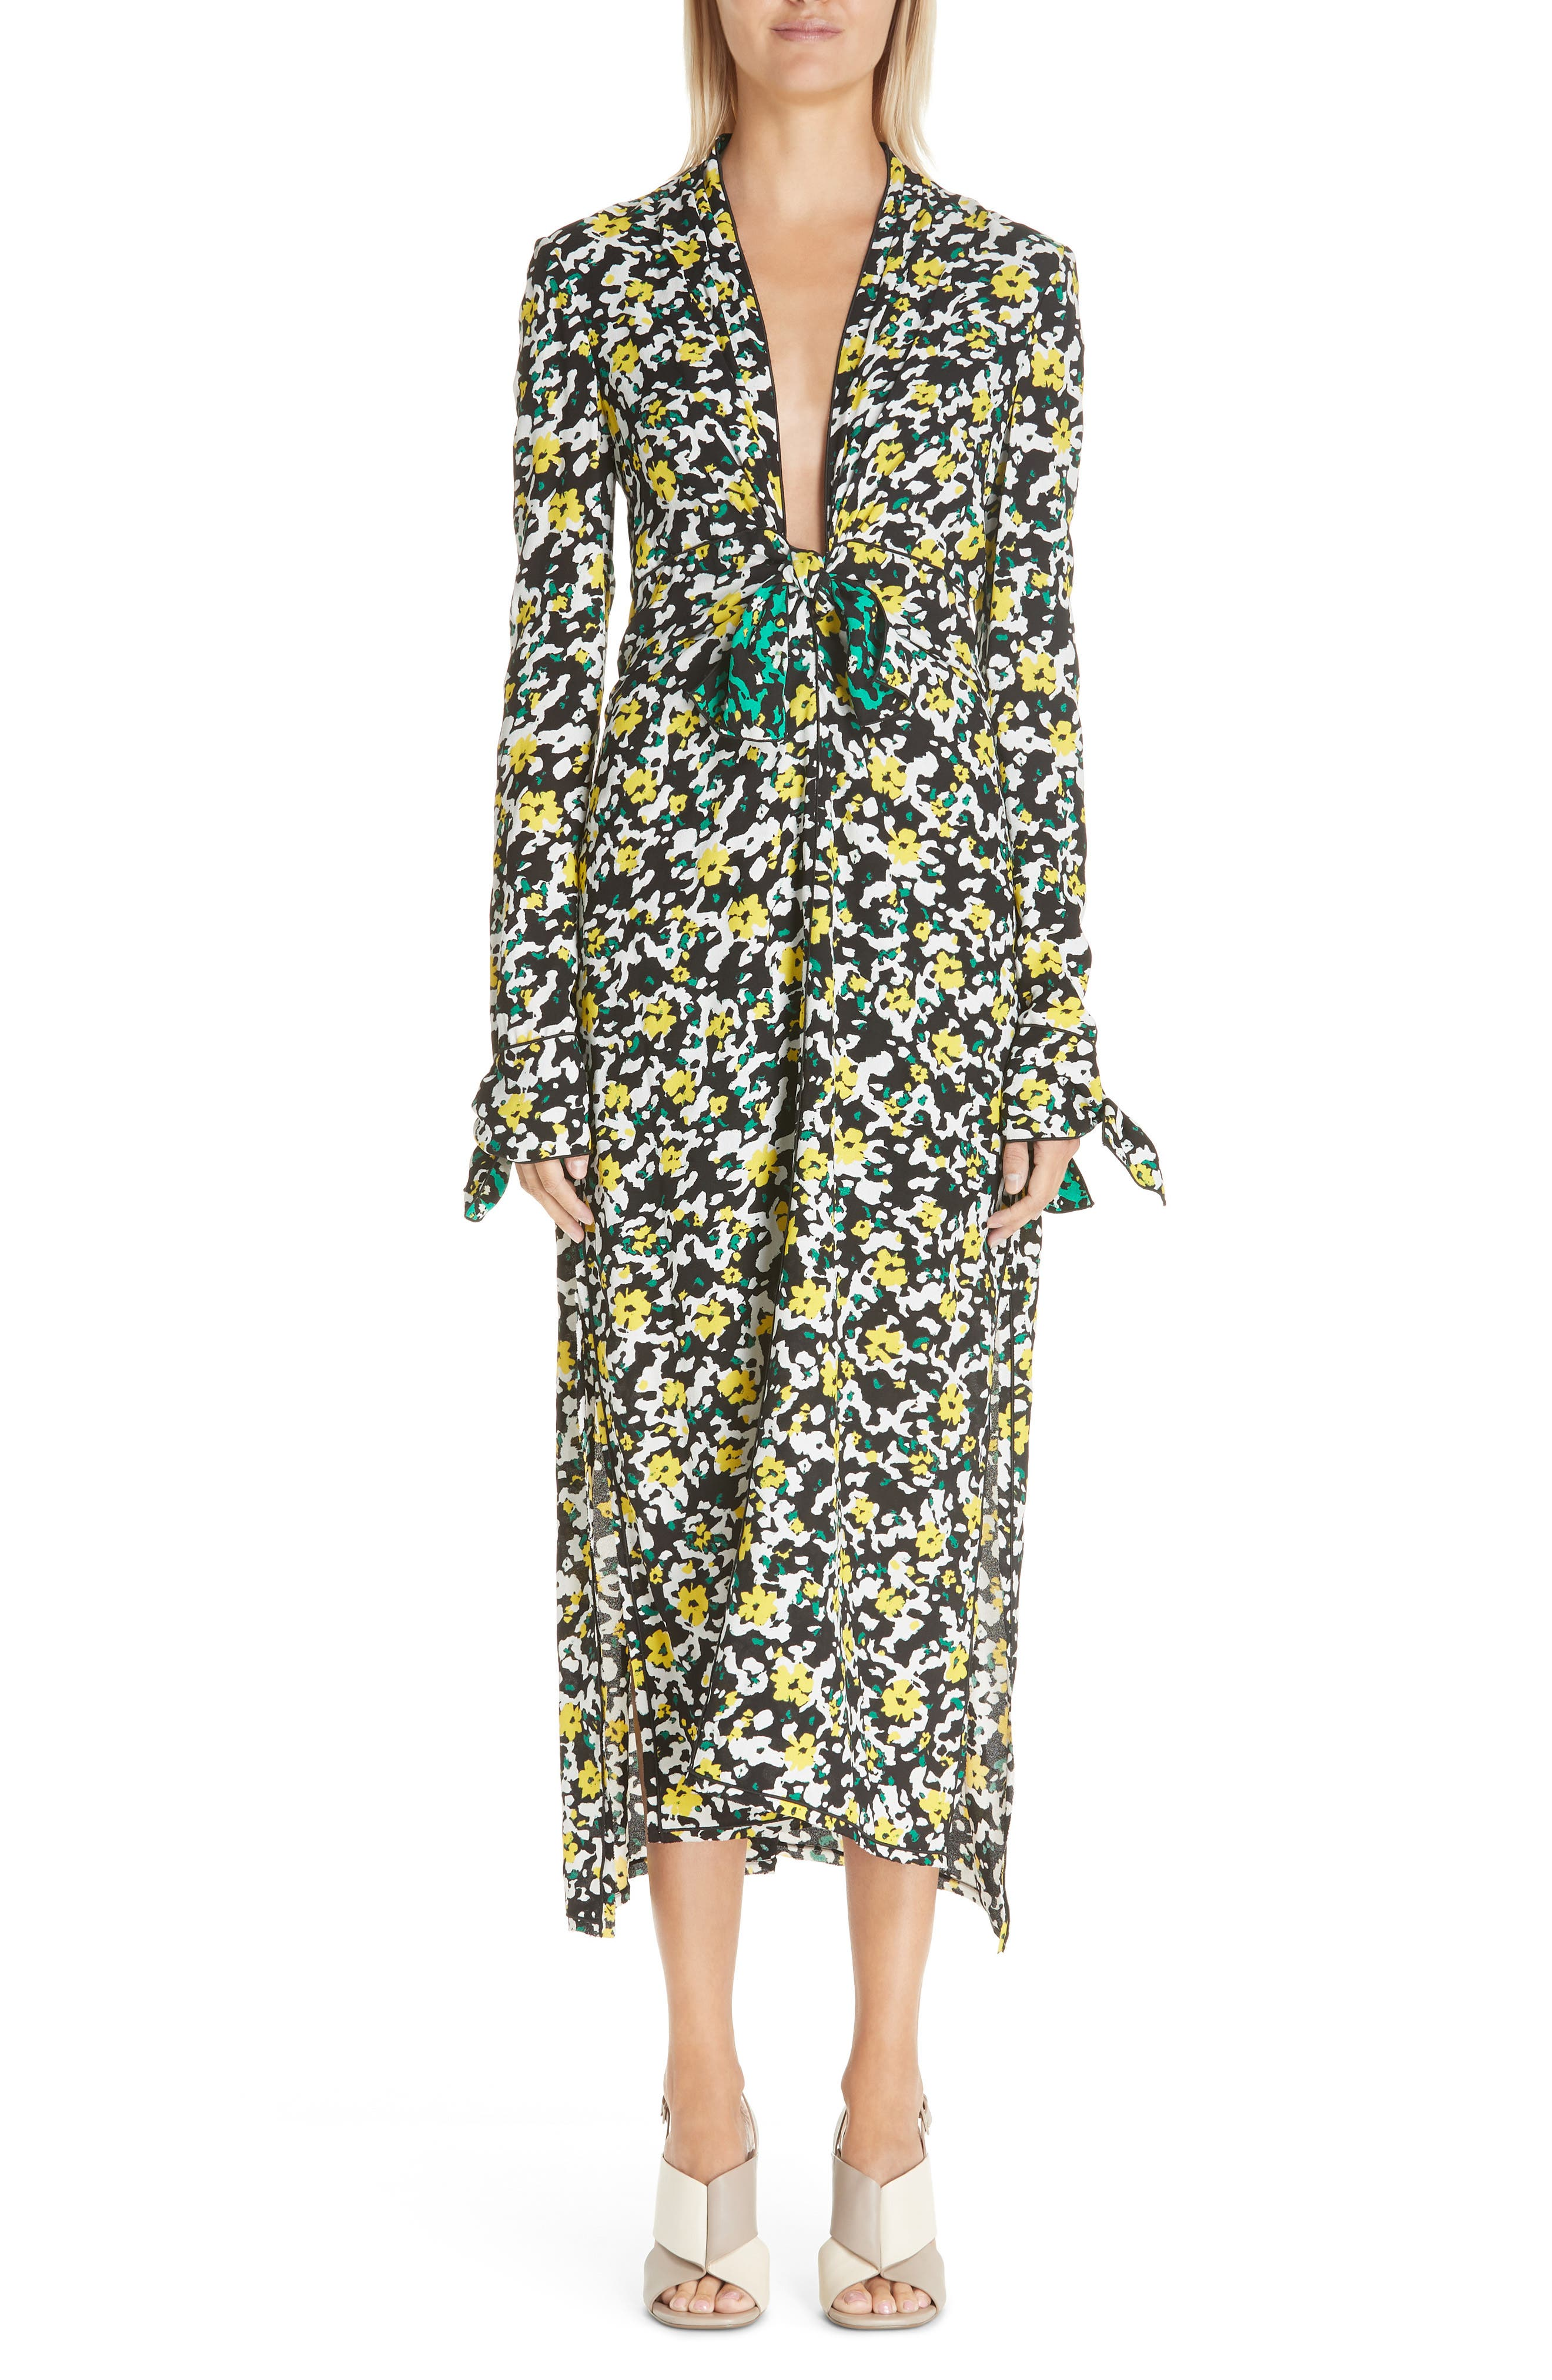 PROENZA SCHOULER, Floral Print Knotted Midi Dress, Main thumbnail 1, color, WHITE WILDFLOWER